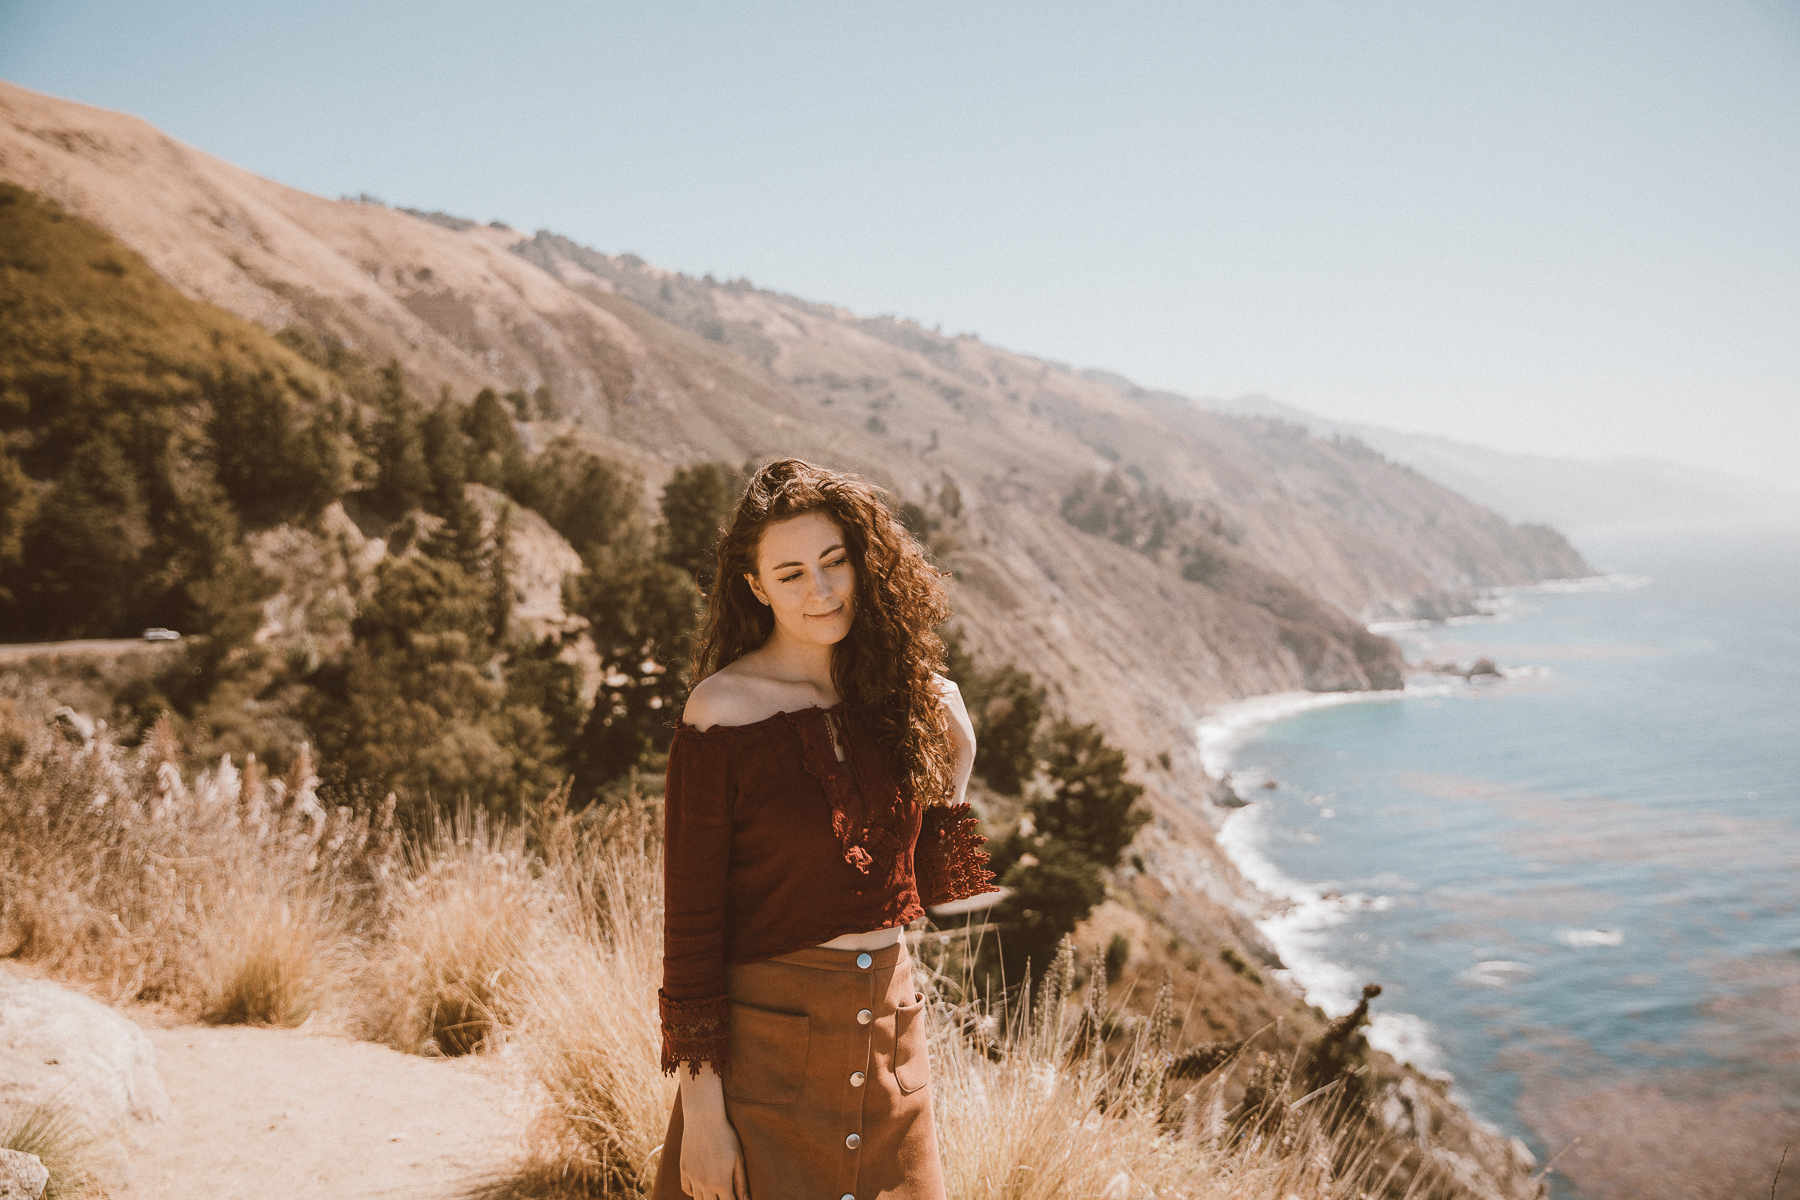 California Highway Route 1 Road trip by photographer Ailera Stone